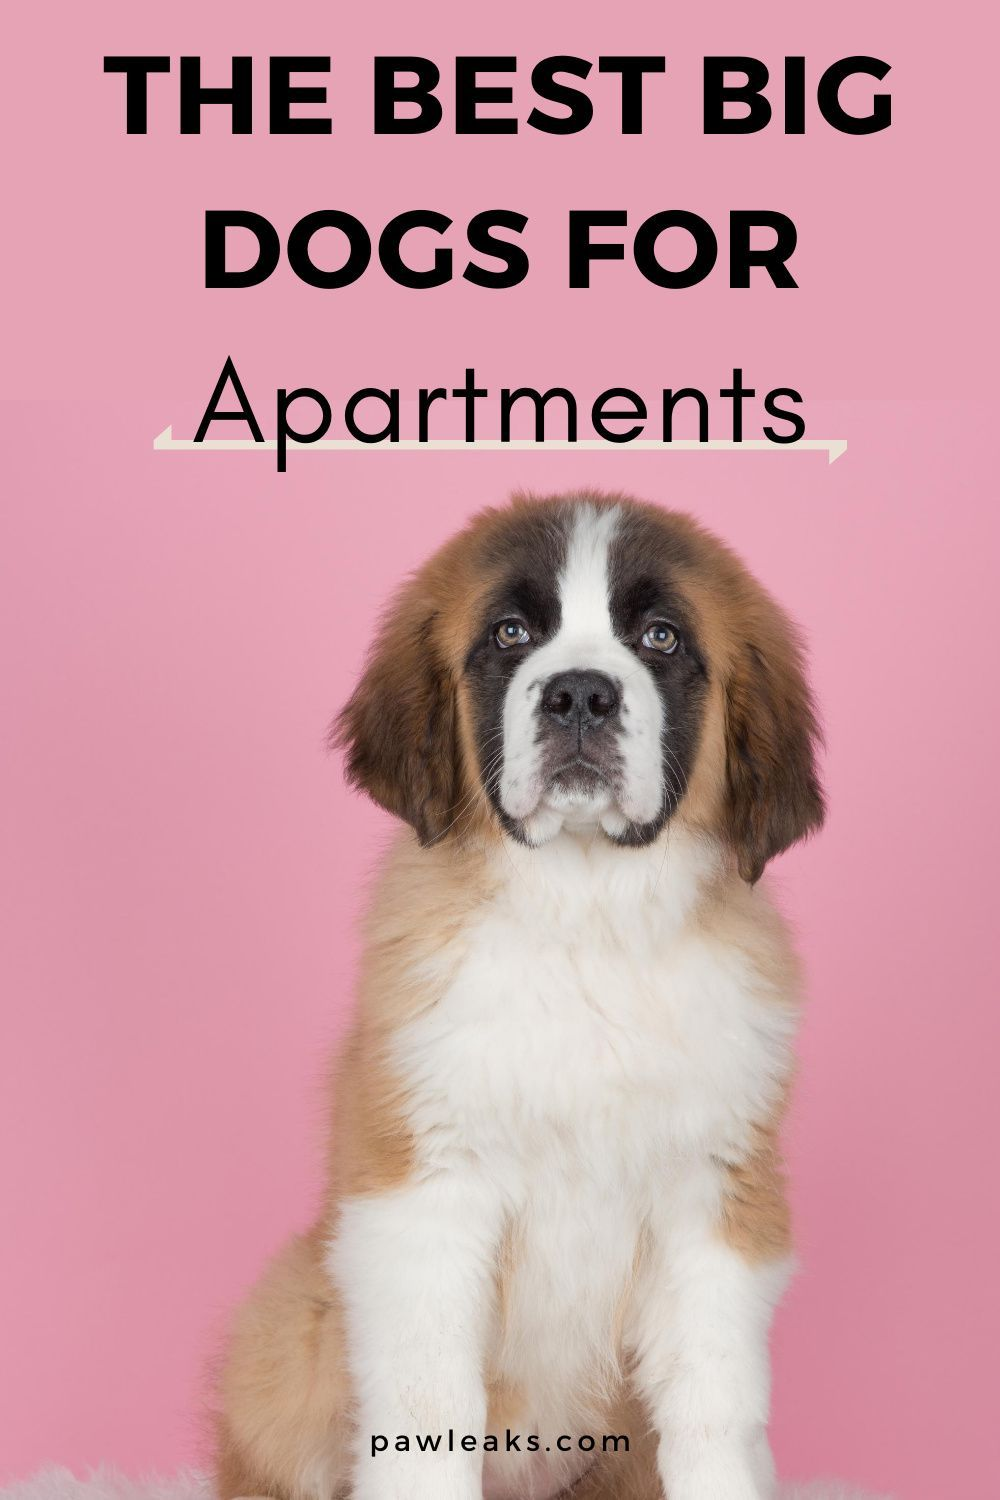 The Best Big Dogs For Apartments By Rottweiler Owner Pawleaks In 2020 Best Big Dogs Puppies That Dont Shed Big Dogs